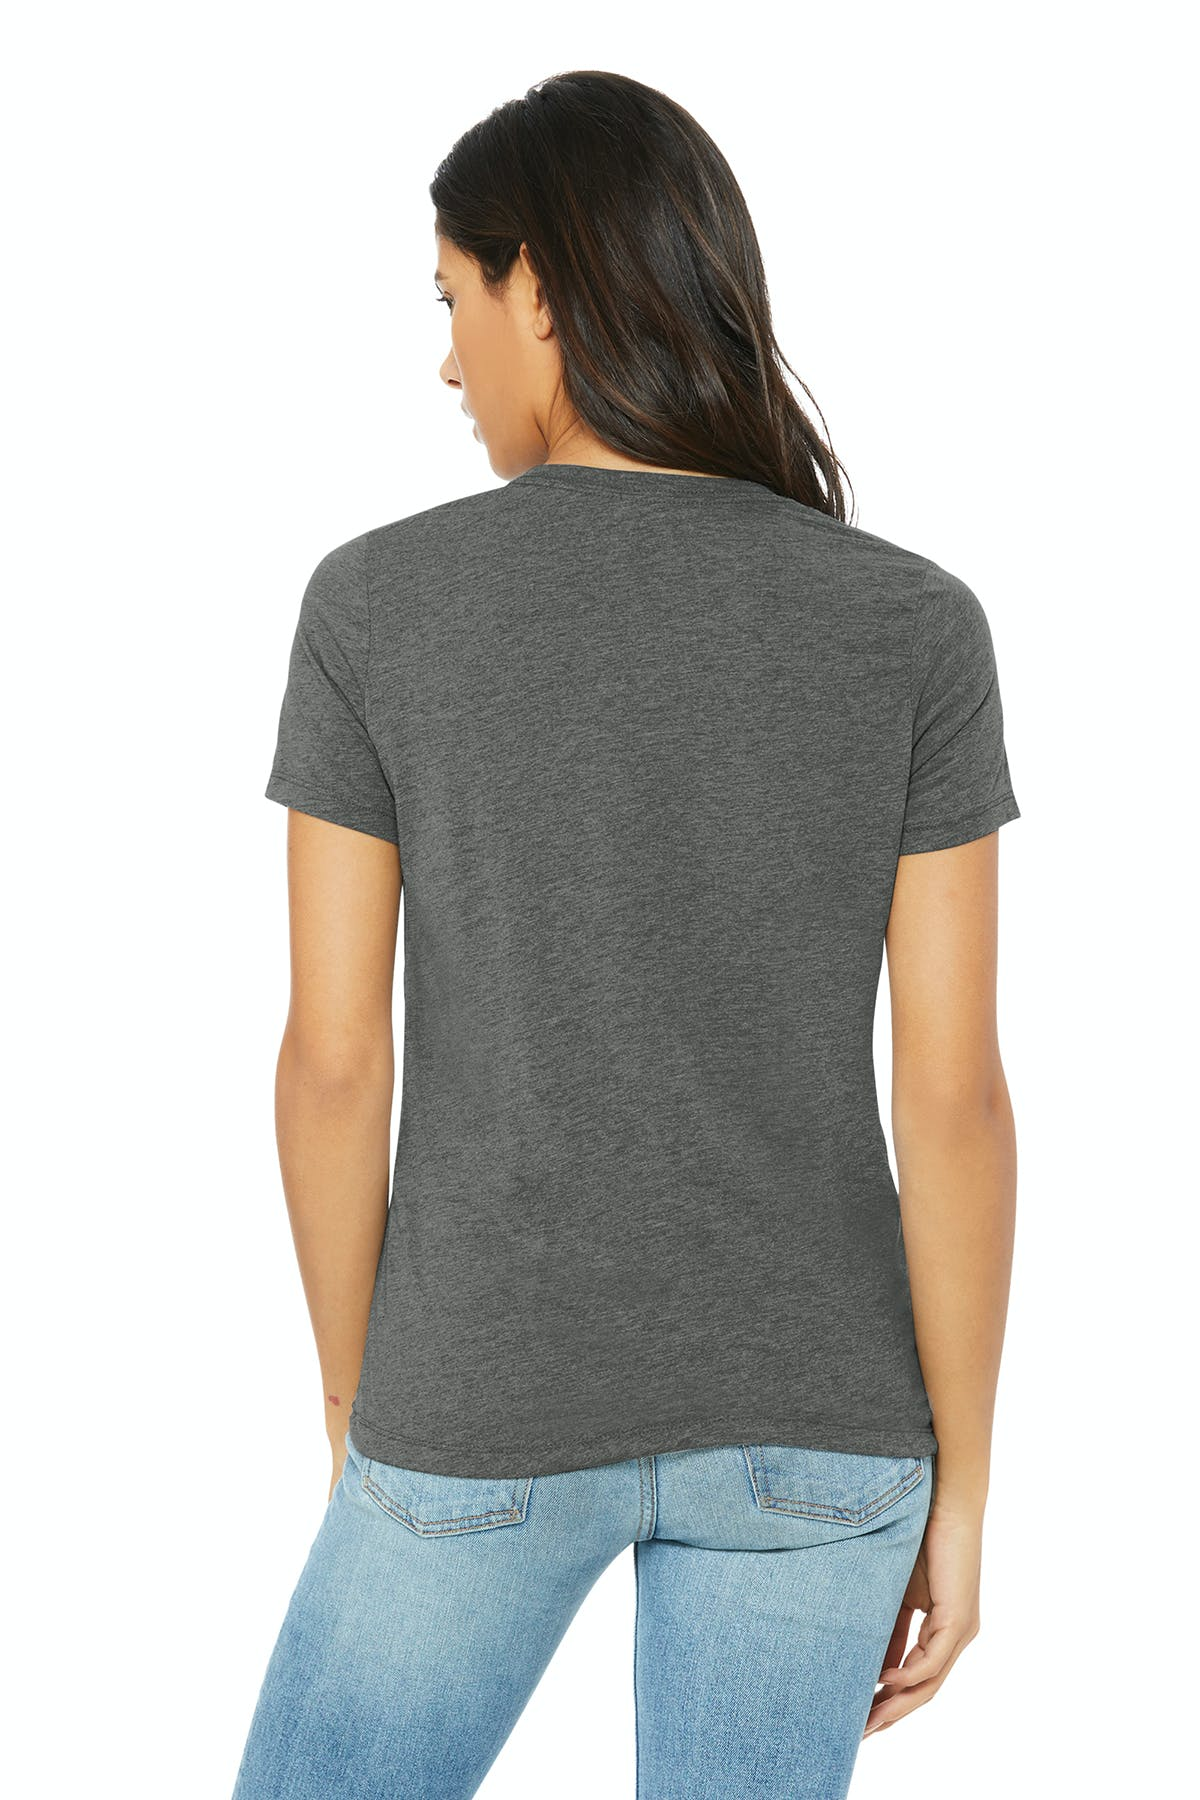 Bella+Canvas ® Women's Relaxed Jersey Short Sleeve Tee - sold by PRINT CITY GRAPHICS, INC